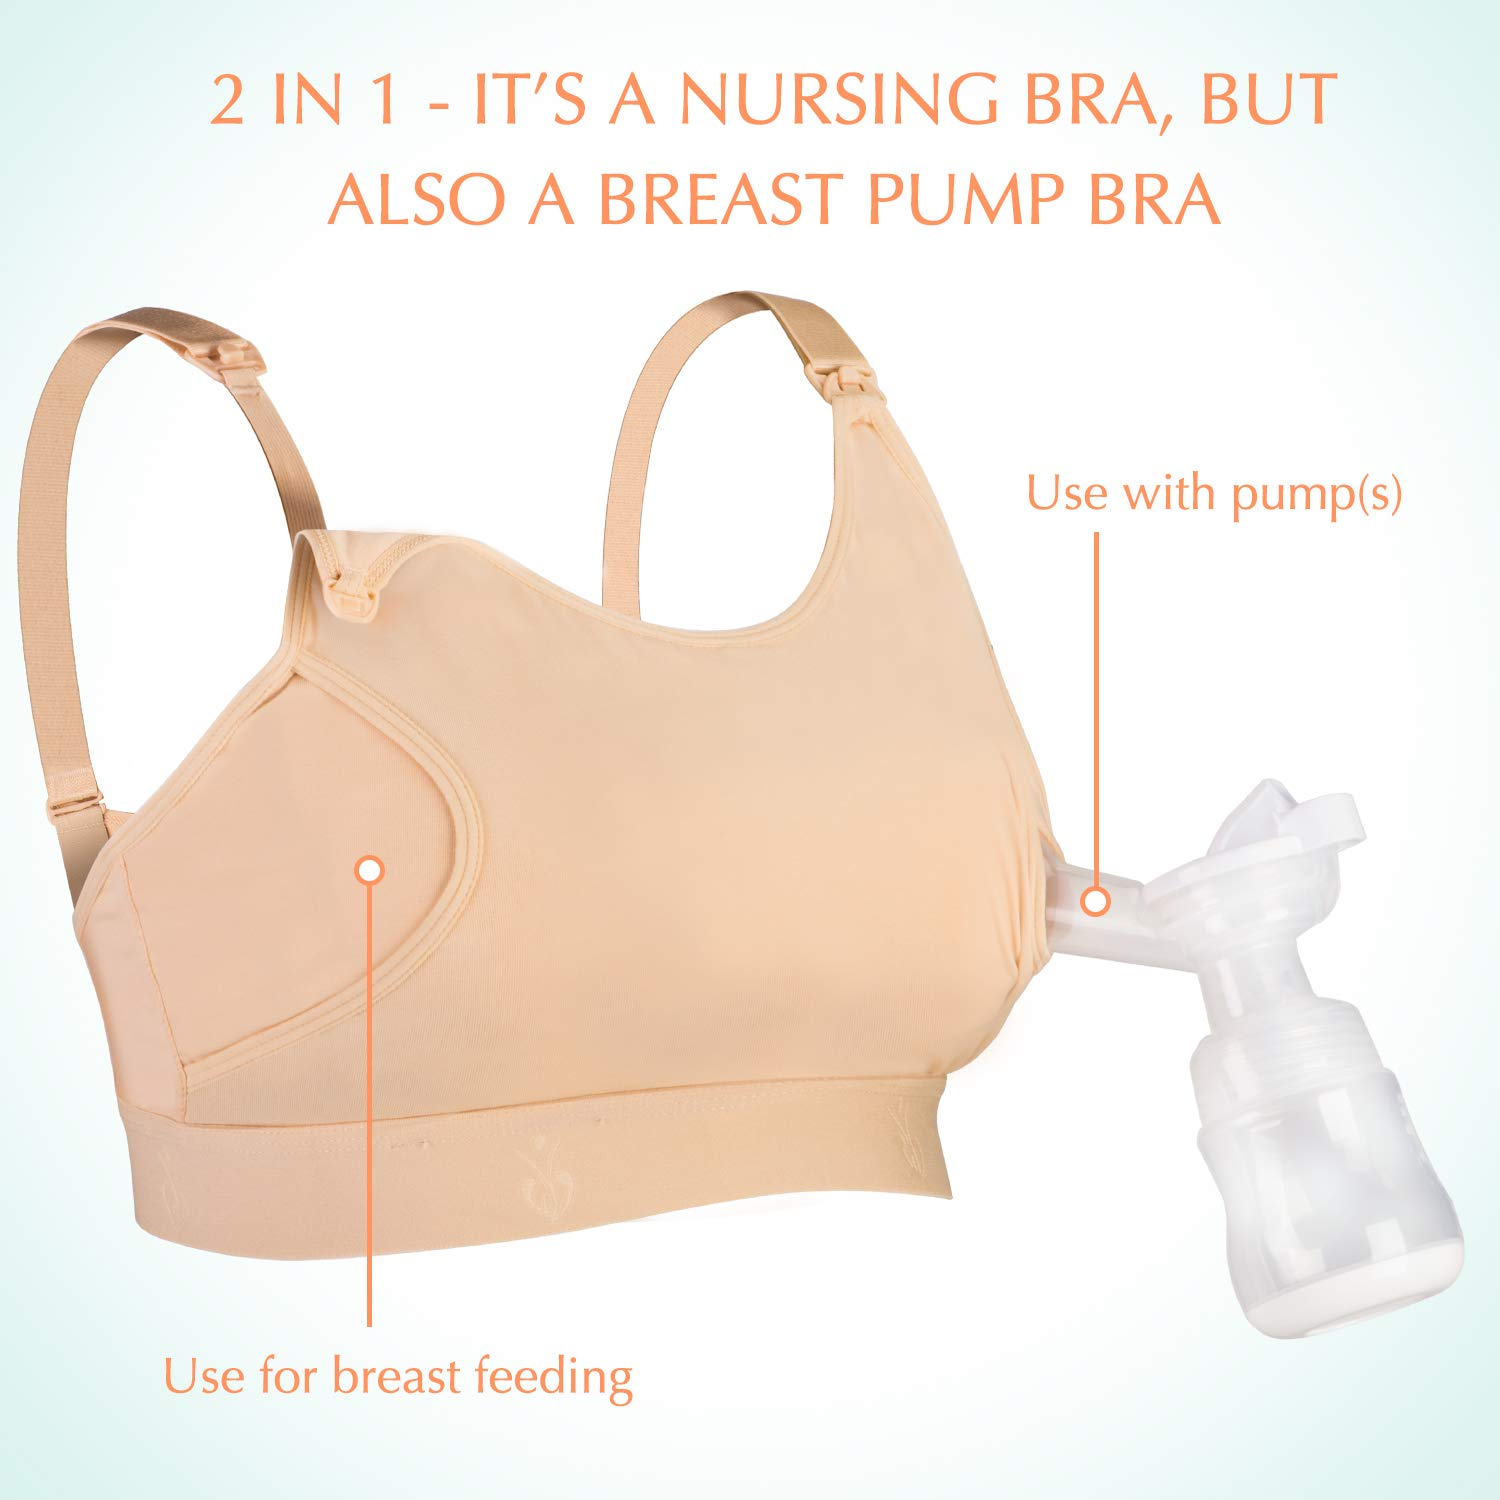 Skin-Small Suitable for Breastfeeding-Pumps by Medela Evenflo and More Philips Avent Hands Free Pumping Bra Momcozy Adjustable Breast-Pumps Holding and Nursing Bra Spectra Lansinoh